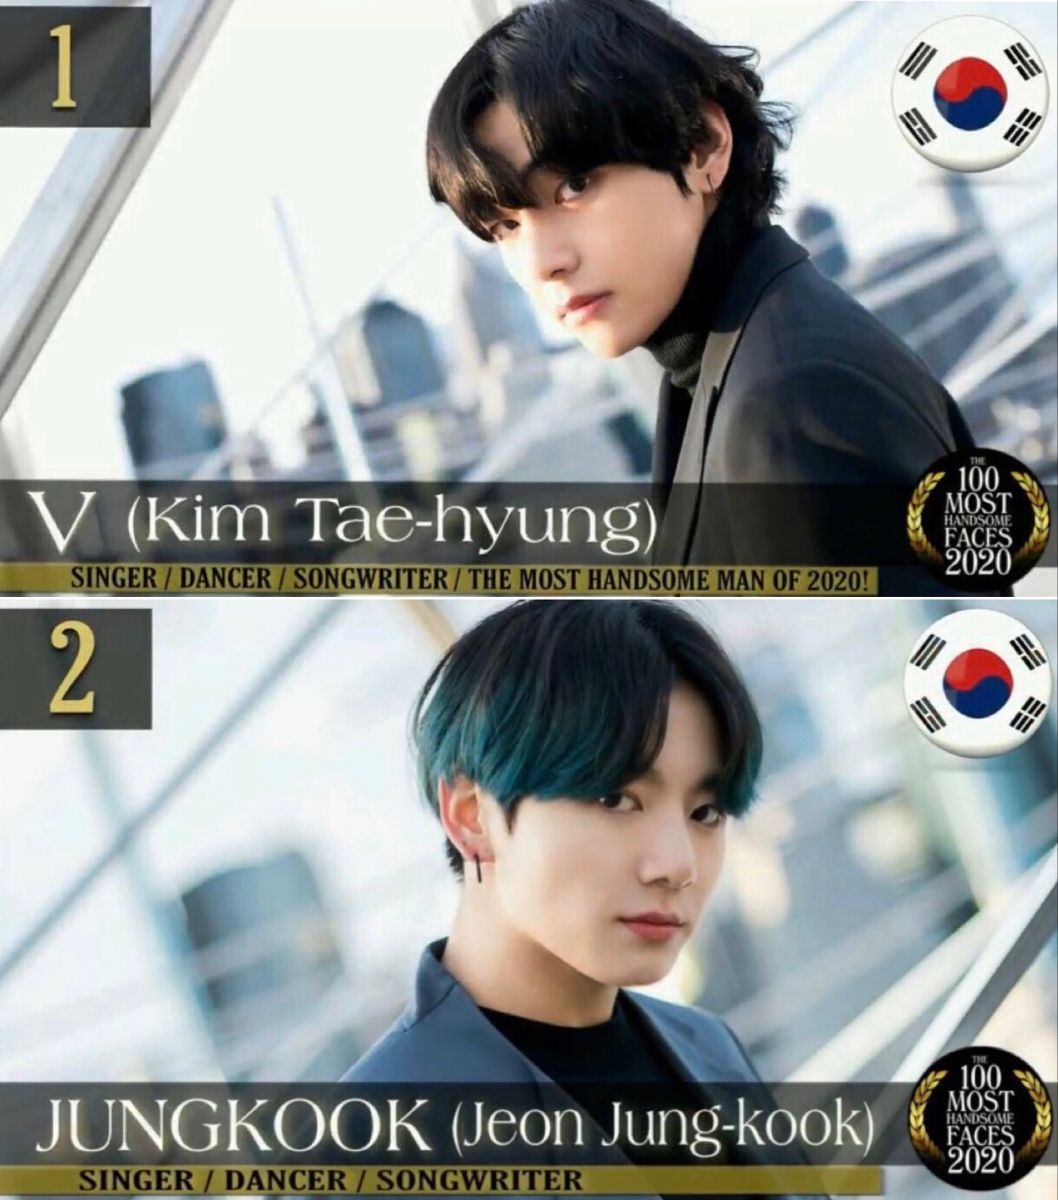 Taehyung And Jungkook Winning 1st And 2nd Place 100 Most Handsome Faces 2020 Jungkook Bts Beautiful Bts Boys